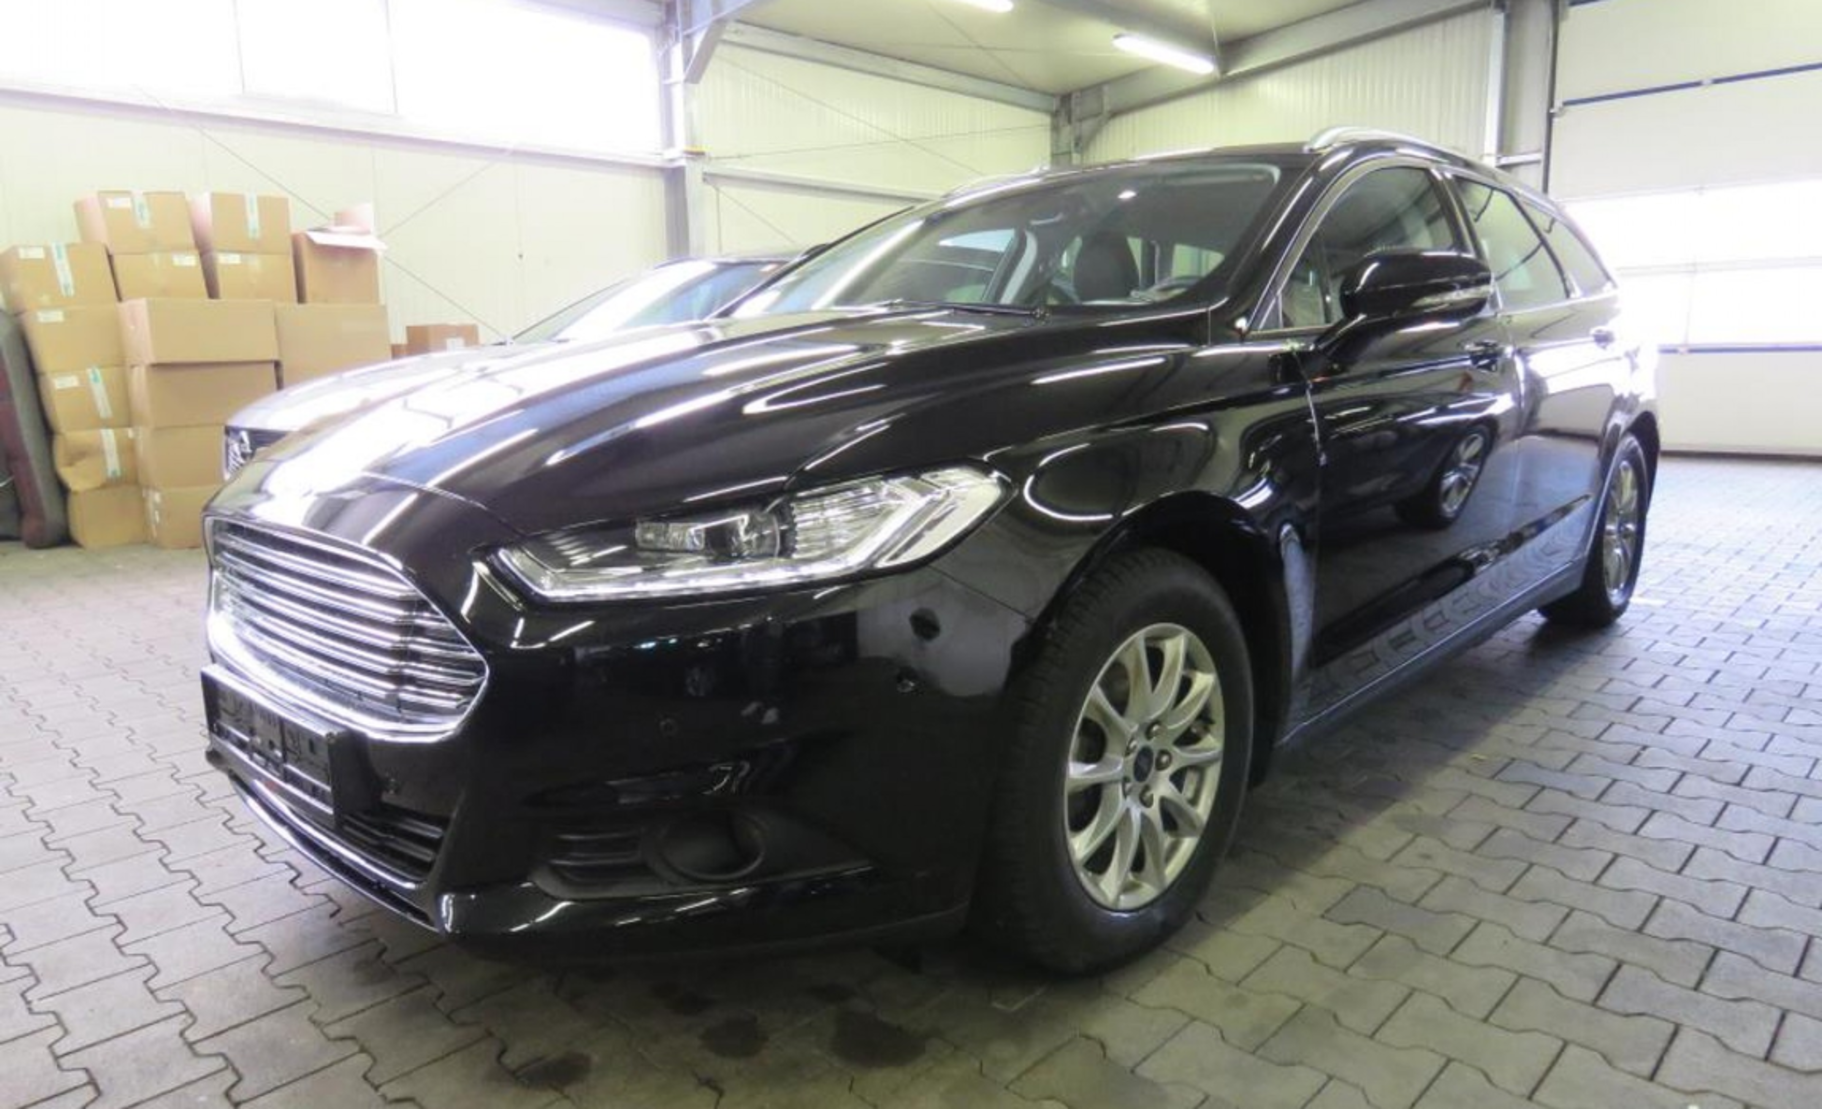 Ford Mondeo Turnier 2.0 TDCi Start-Stop Aut. Business Edition (689019) detail1